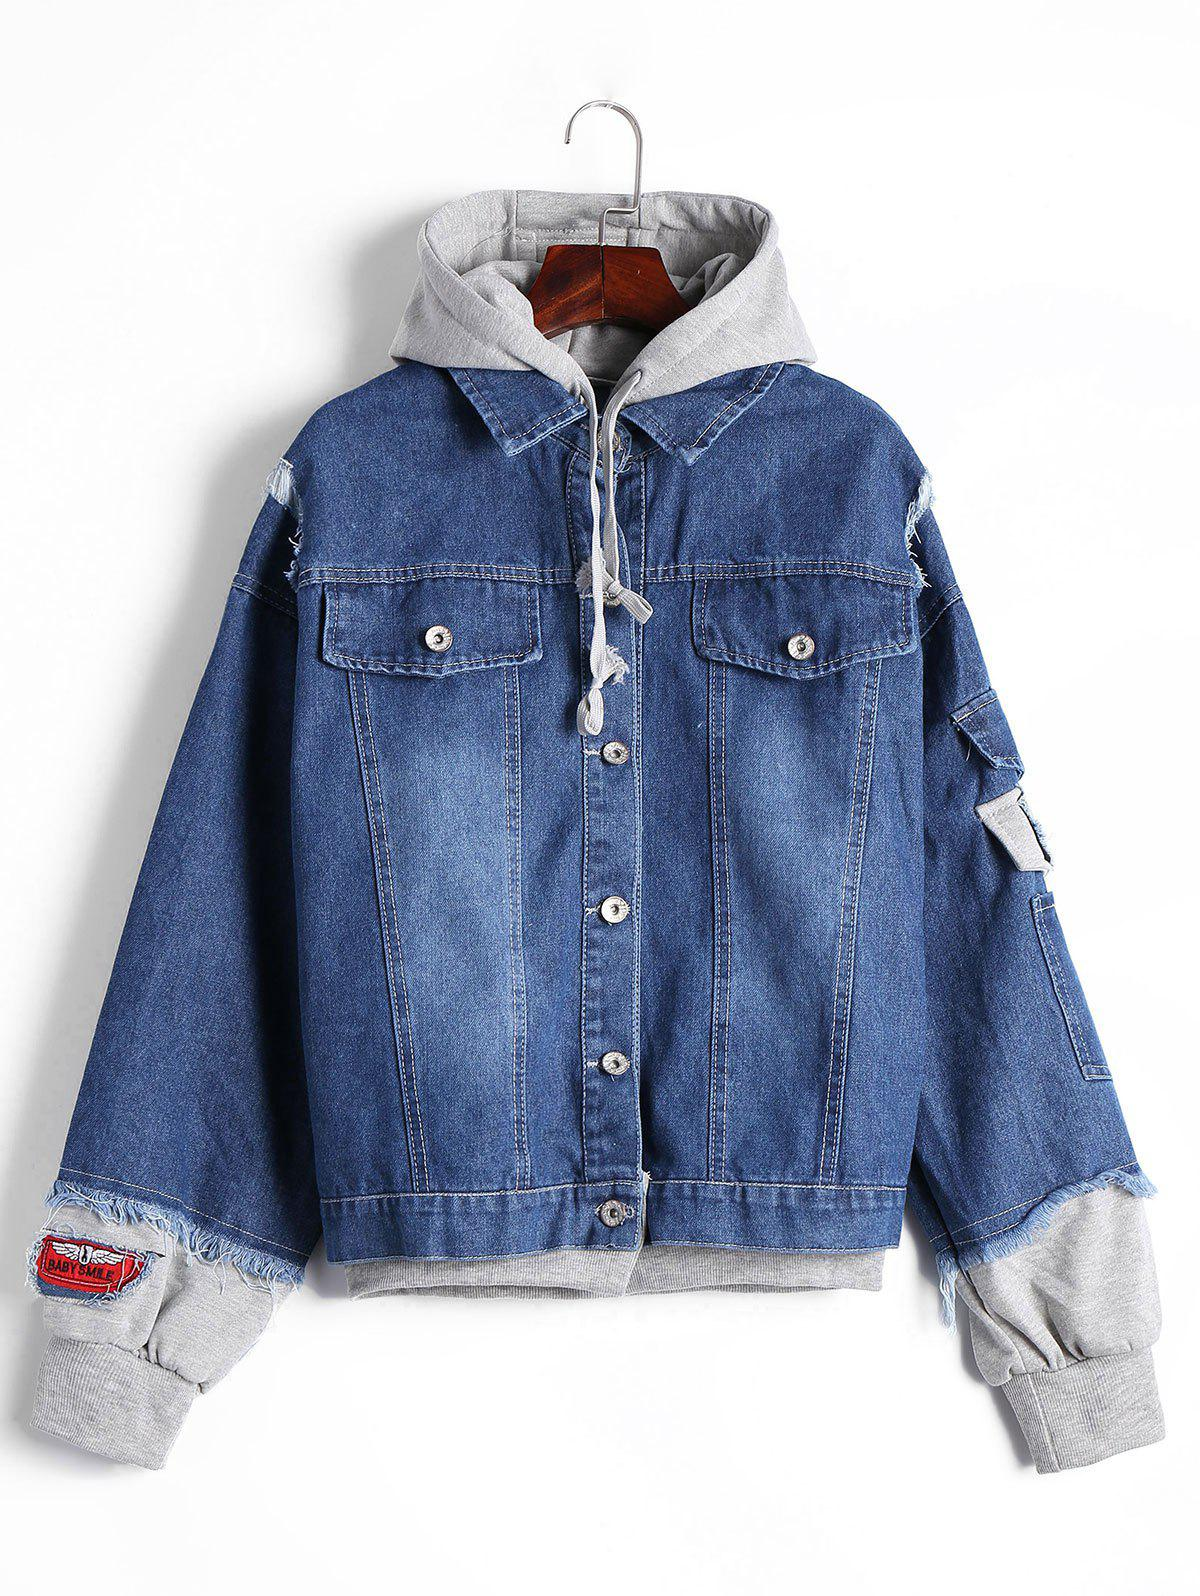 Ripped Patched Hoode Denim Jacket 223112301